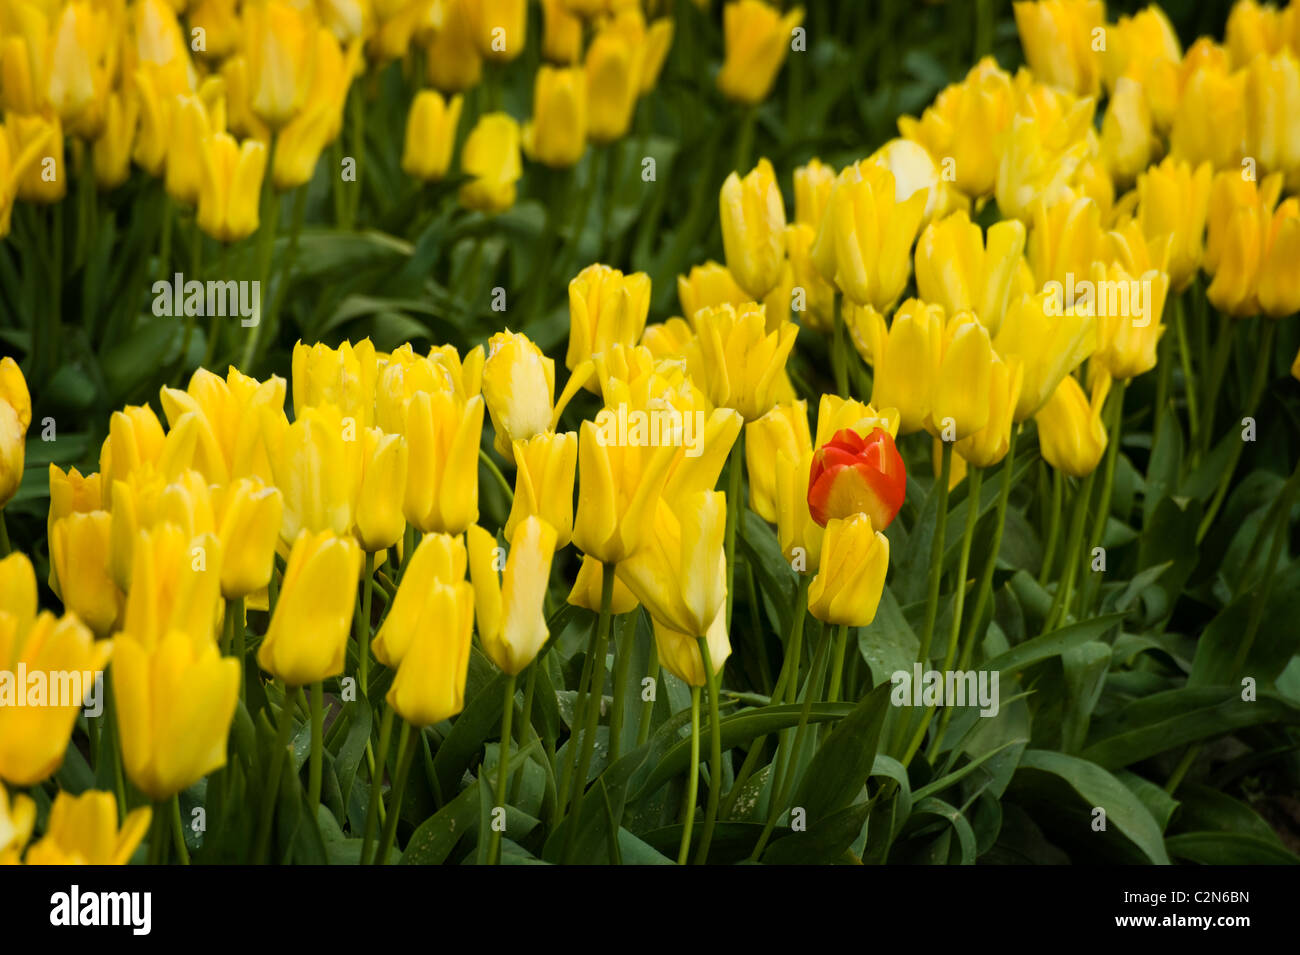 Colorful tulip fields can be seen in the springtime in the Skagit Valley of Washington state. Stock Photo